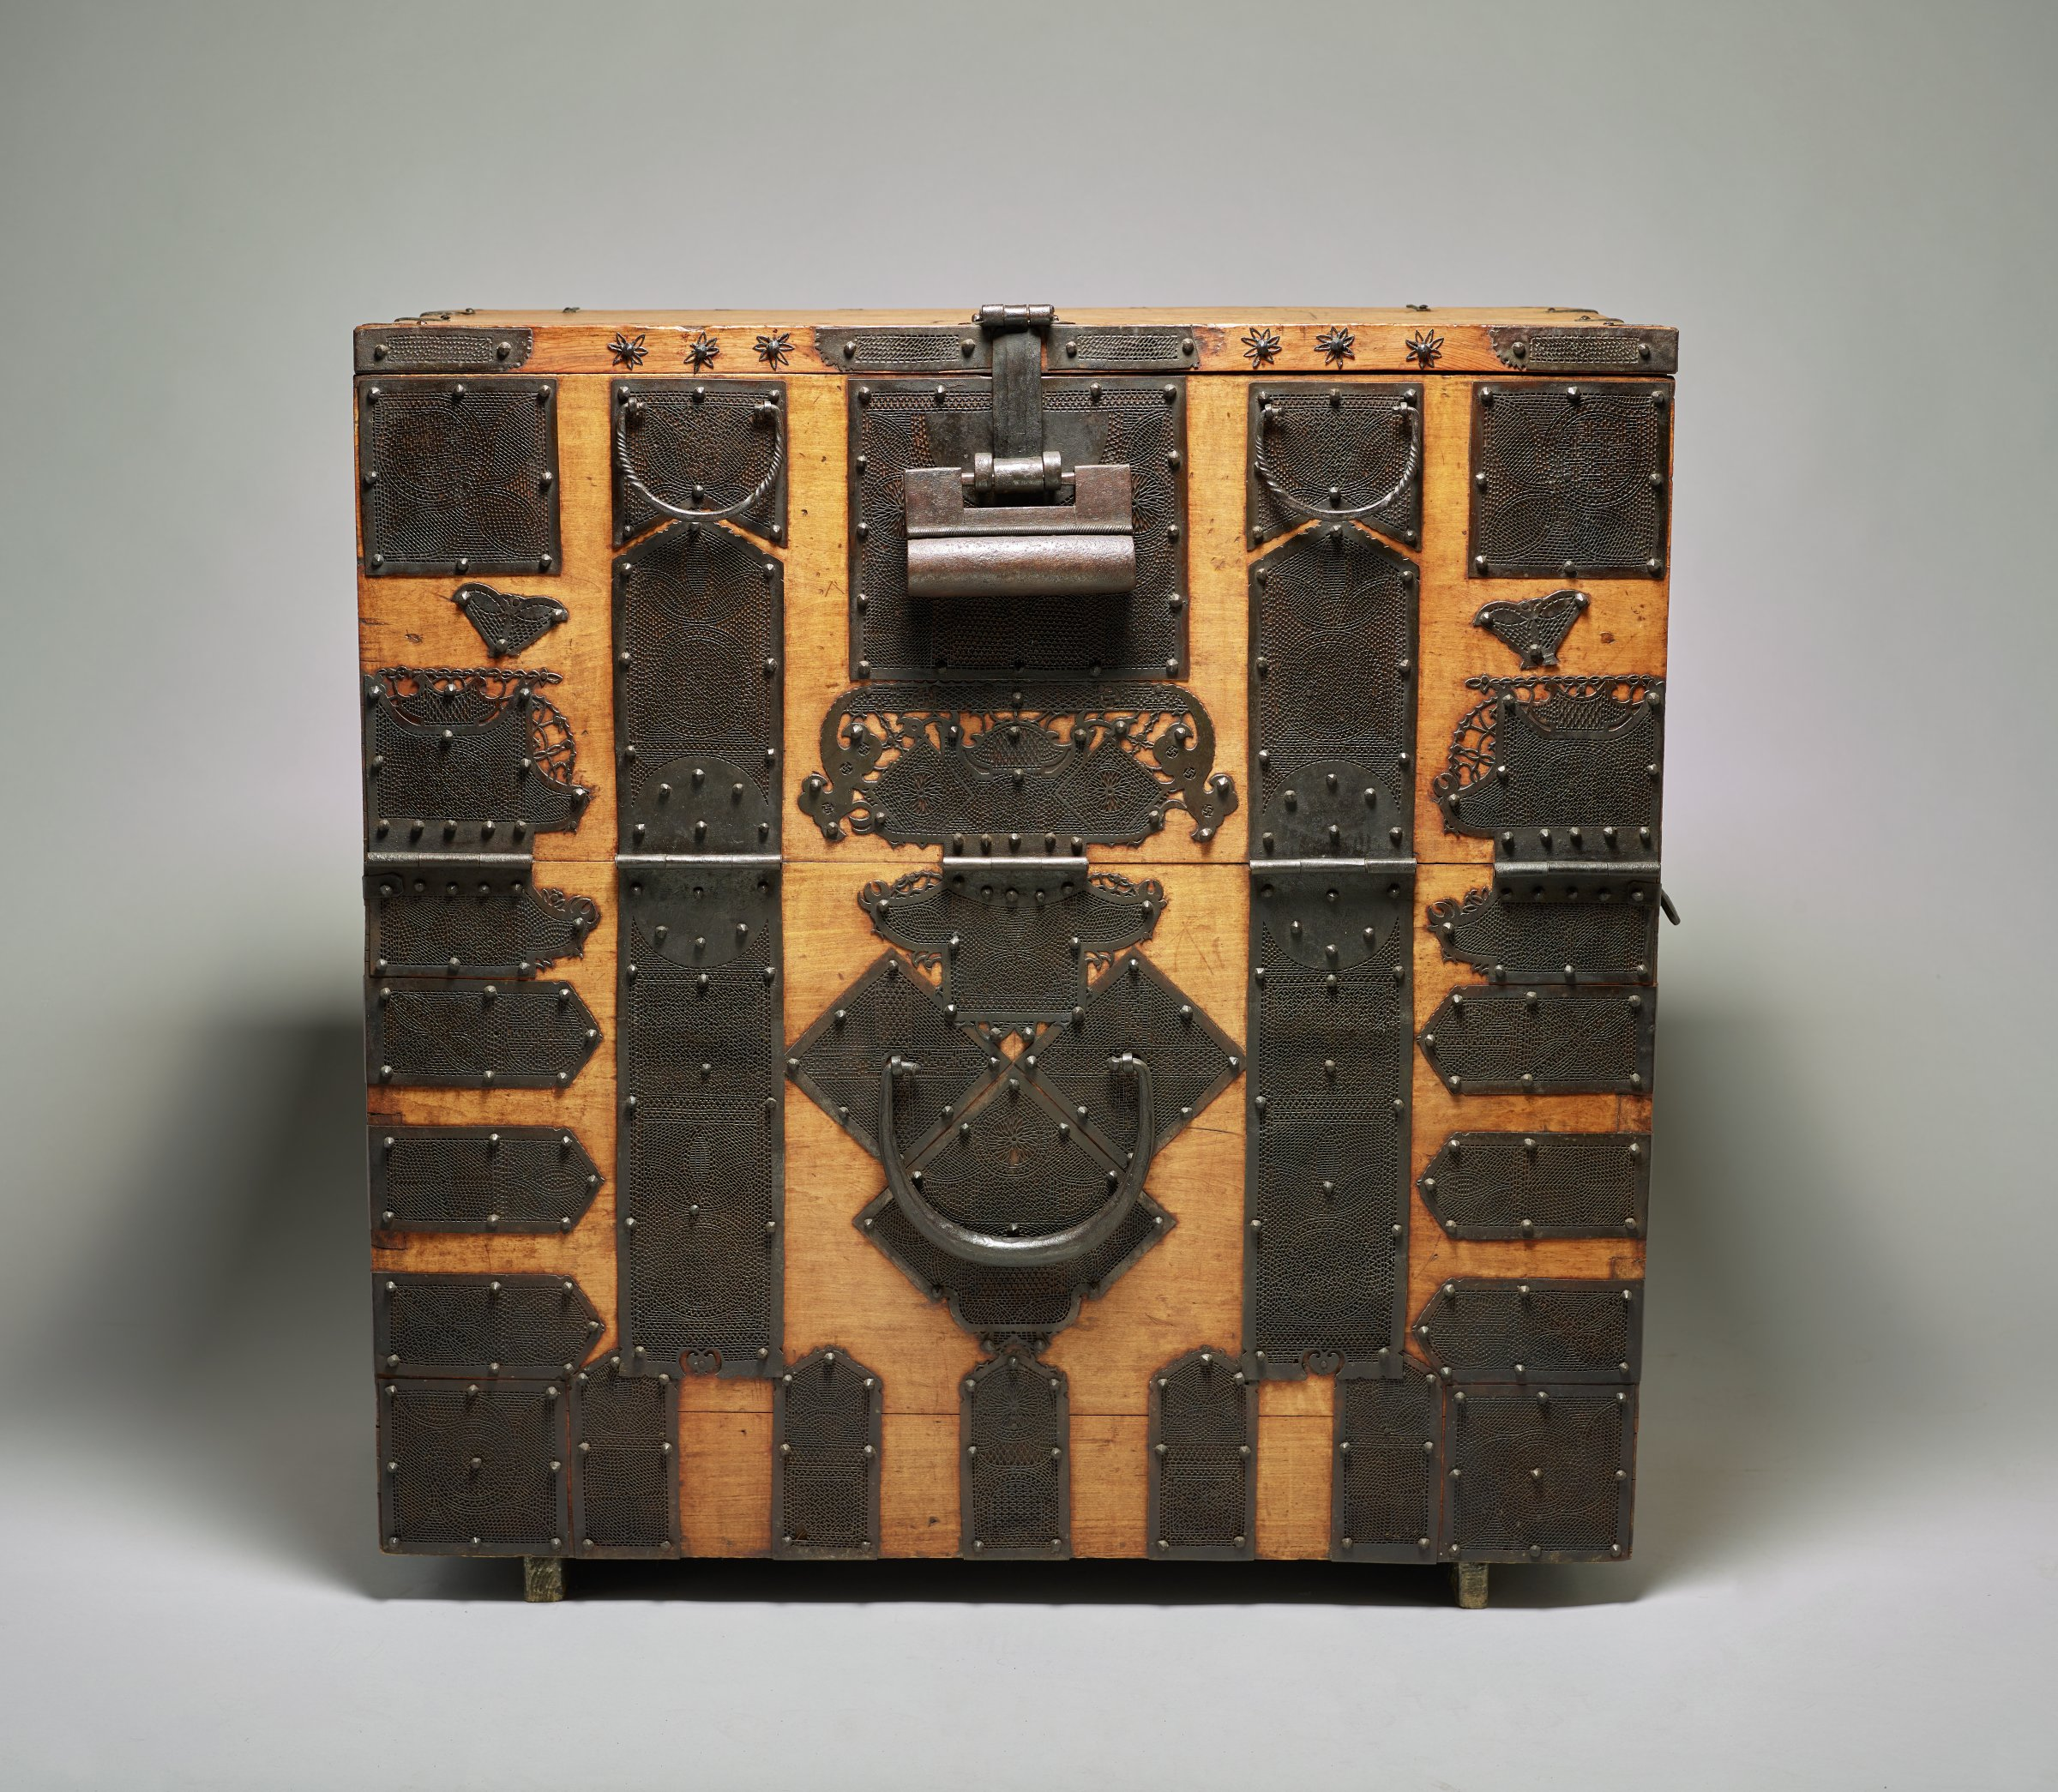 Chest (Bandaji) with Flower Basket and Butterfly Motifs, Korea, wood and iron